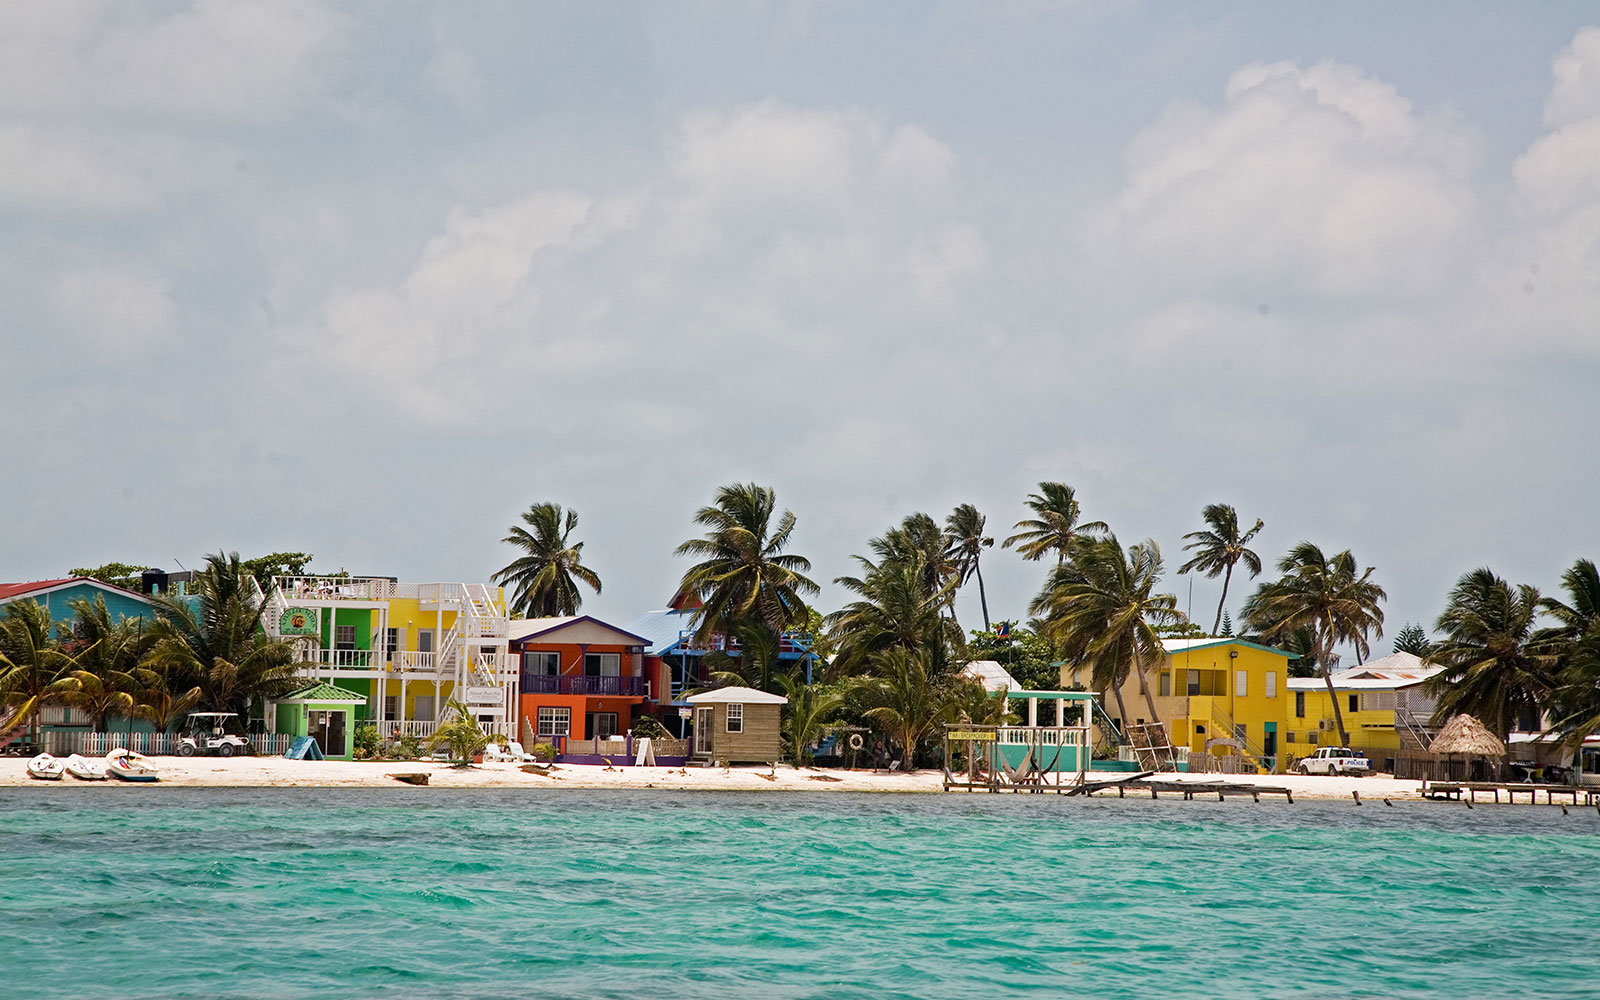 No. 5: Caye Caulker, Belize